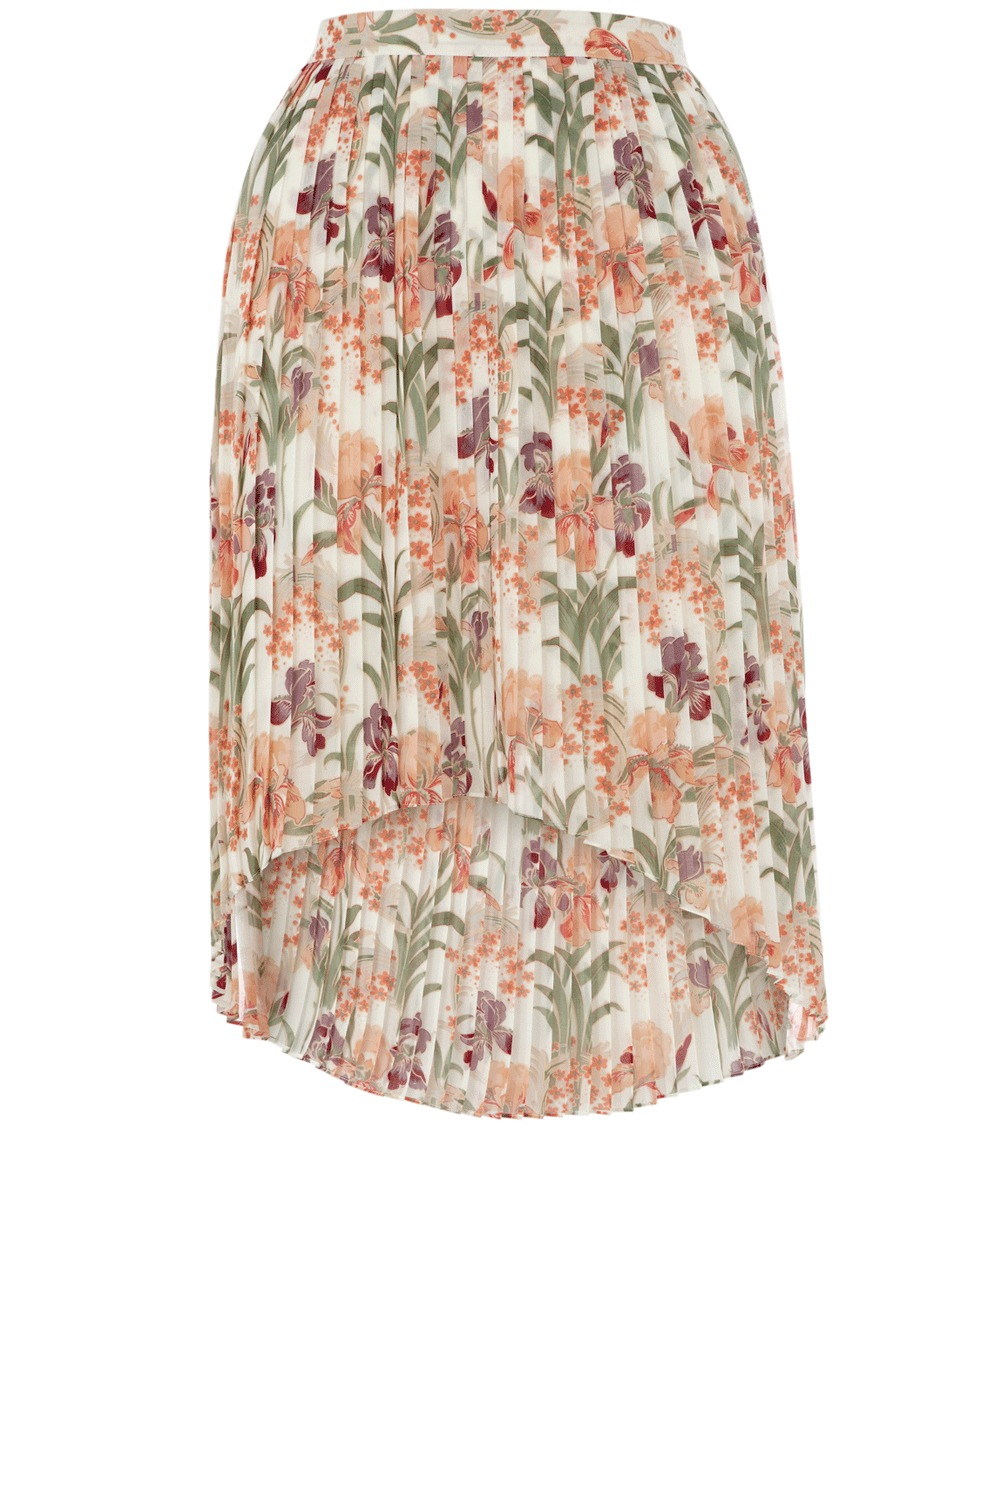 Iris Pleated Skirt - pattern: floral - busy, florals; fit: loose/voluminous; style: pleated; waist detail: fitted waist, narrow waistband; waist: mid/regular rise; occasions: casual, evening, work; length: just above the knee; fibres: polyester/polyamide - 100%; material texture: chiffon; hip detail: structured pleats at hip, soft pleats at hip/draping at hip/flared at hip; predominant colour: multicoloured; trends: pastels, prints; texture group: sheer fabrics/chiffon/organza etc.; pattern type: fabric; pattern size: small &amp; busy